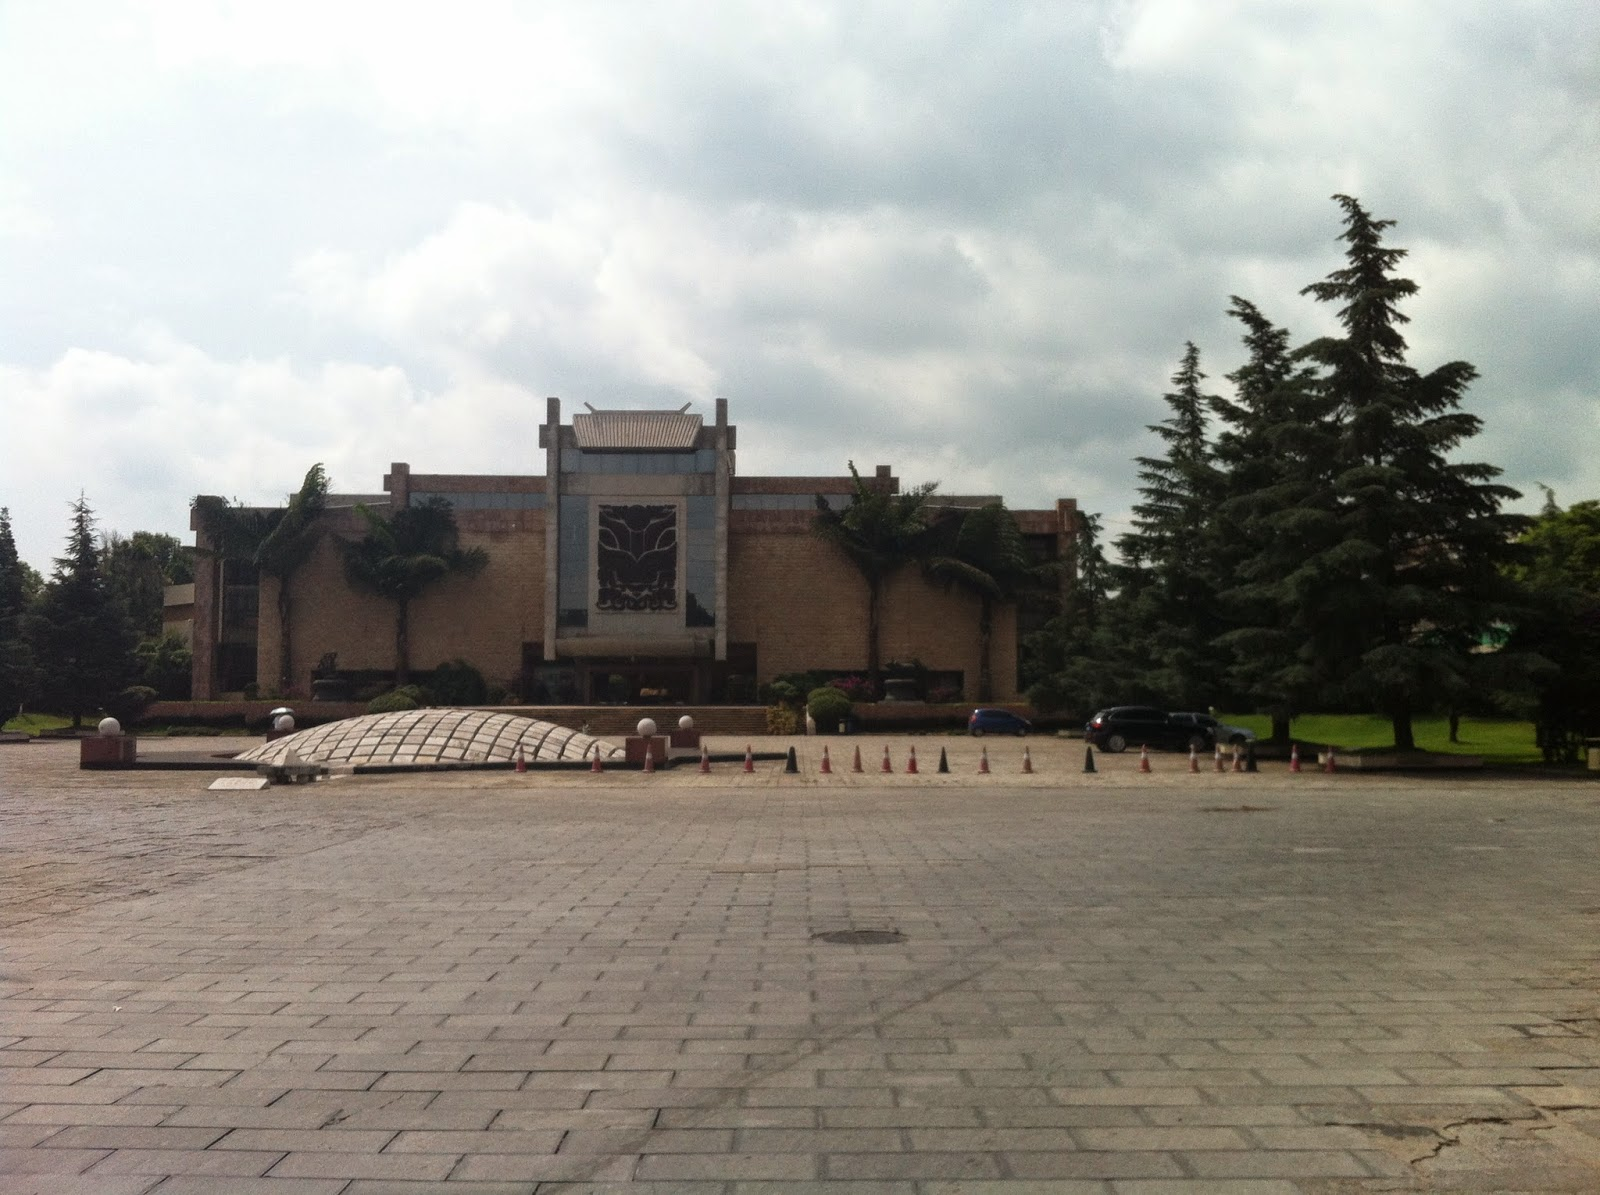 The Outside of the Yunnan Nationalities Museum in Kunming, China